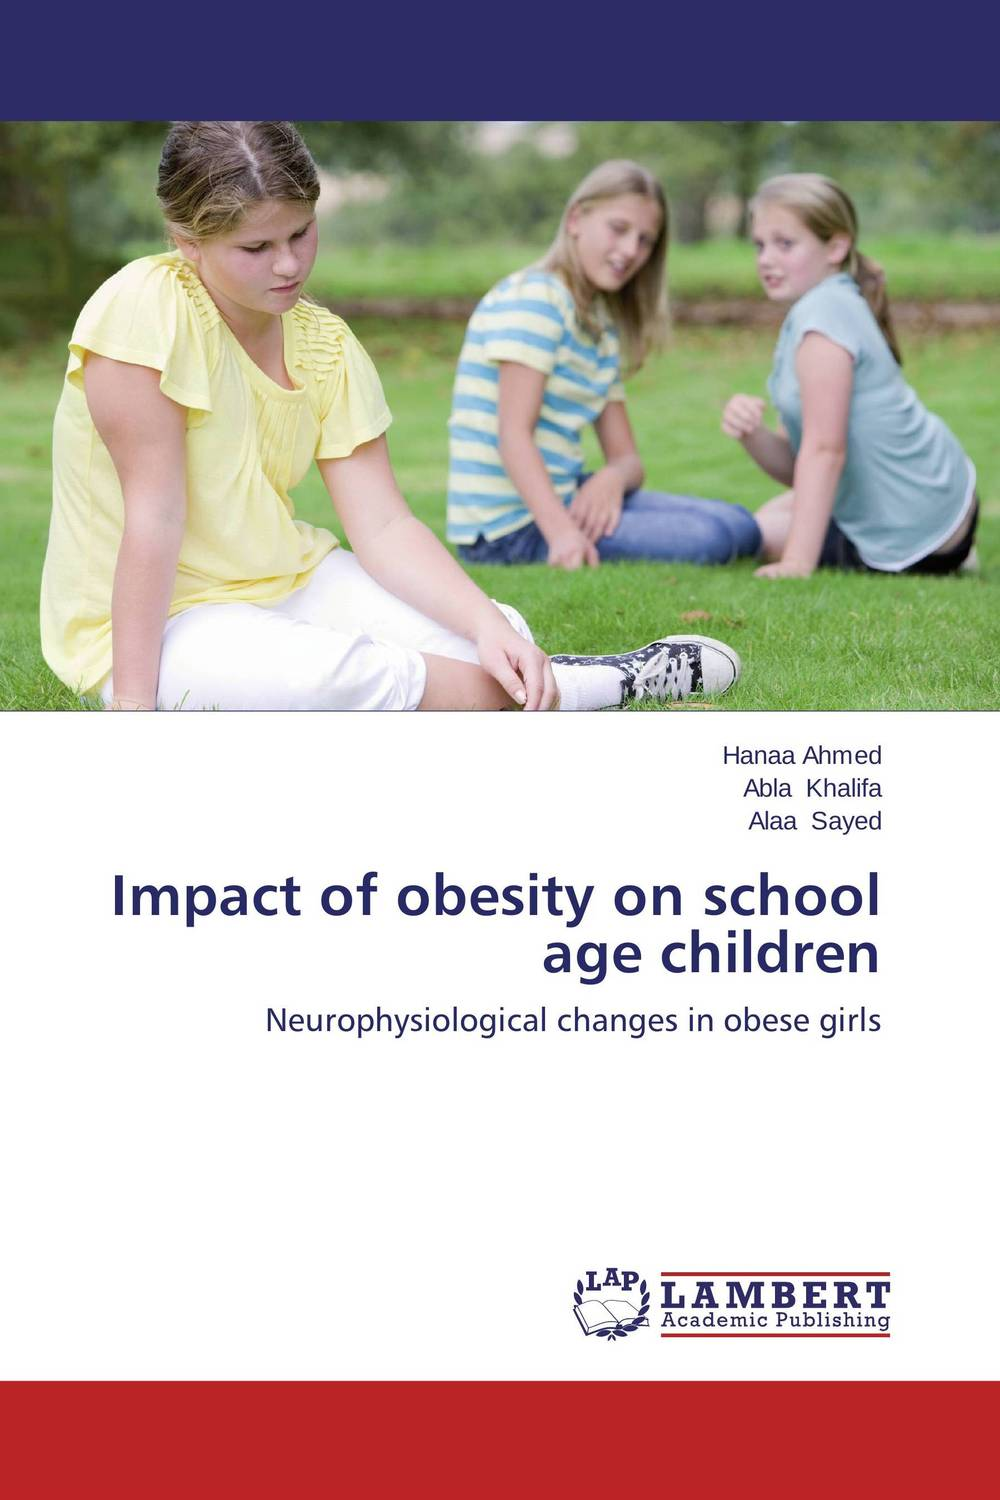 Impact of obesity on school age children